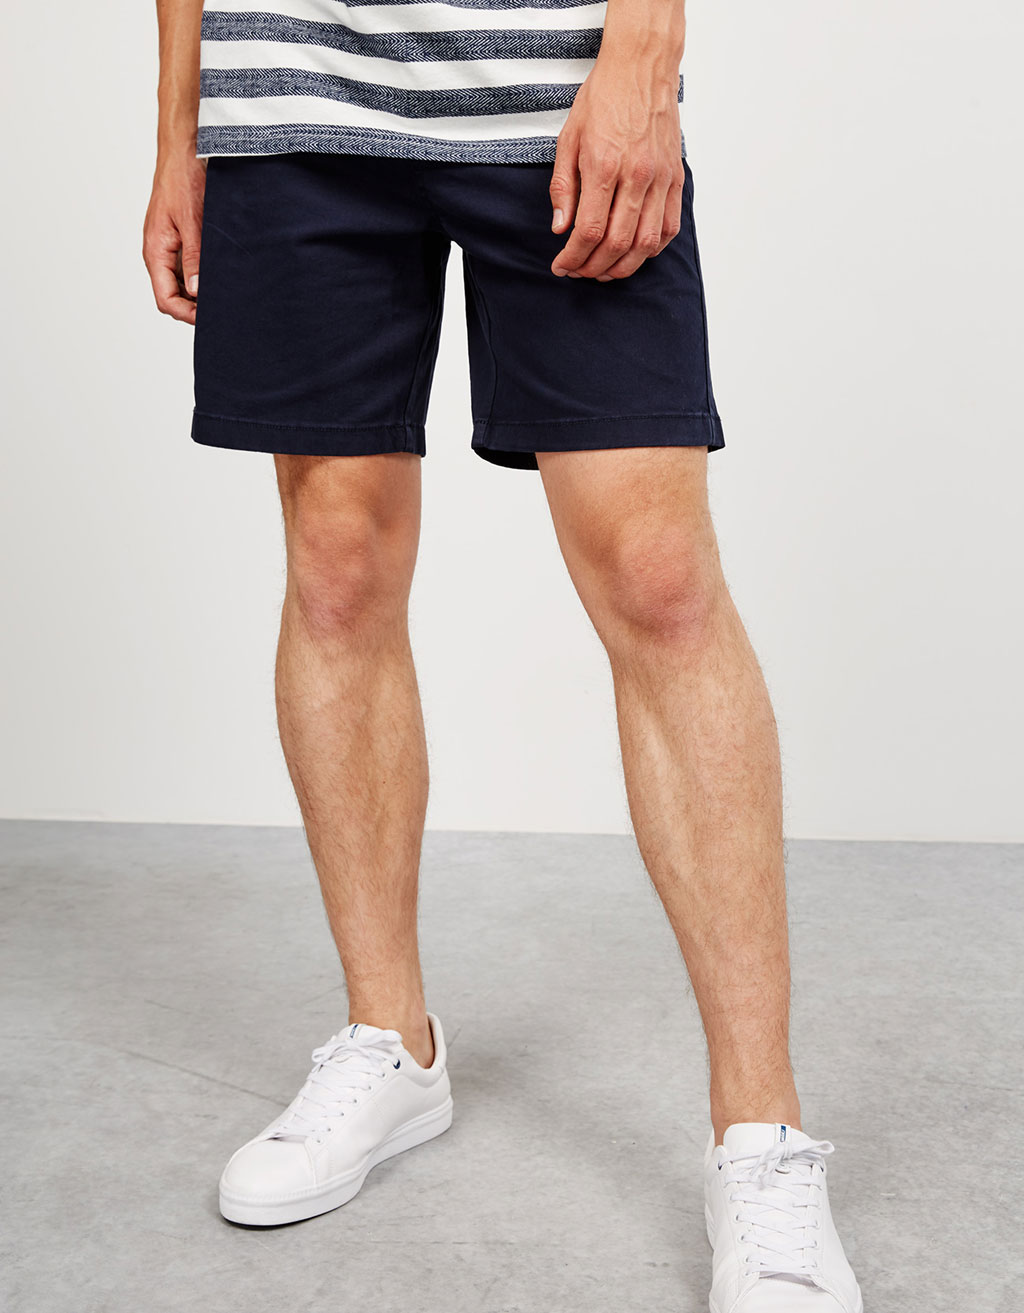 Cotton bermudas with contrasting belt